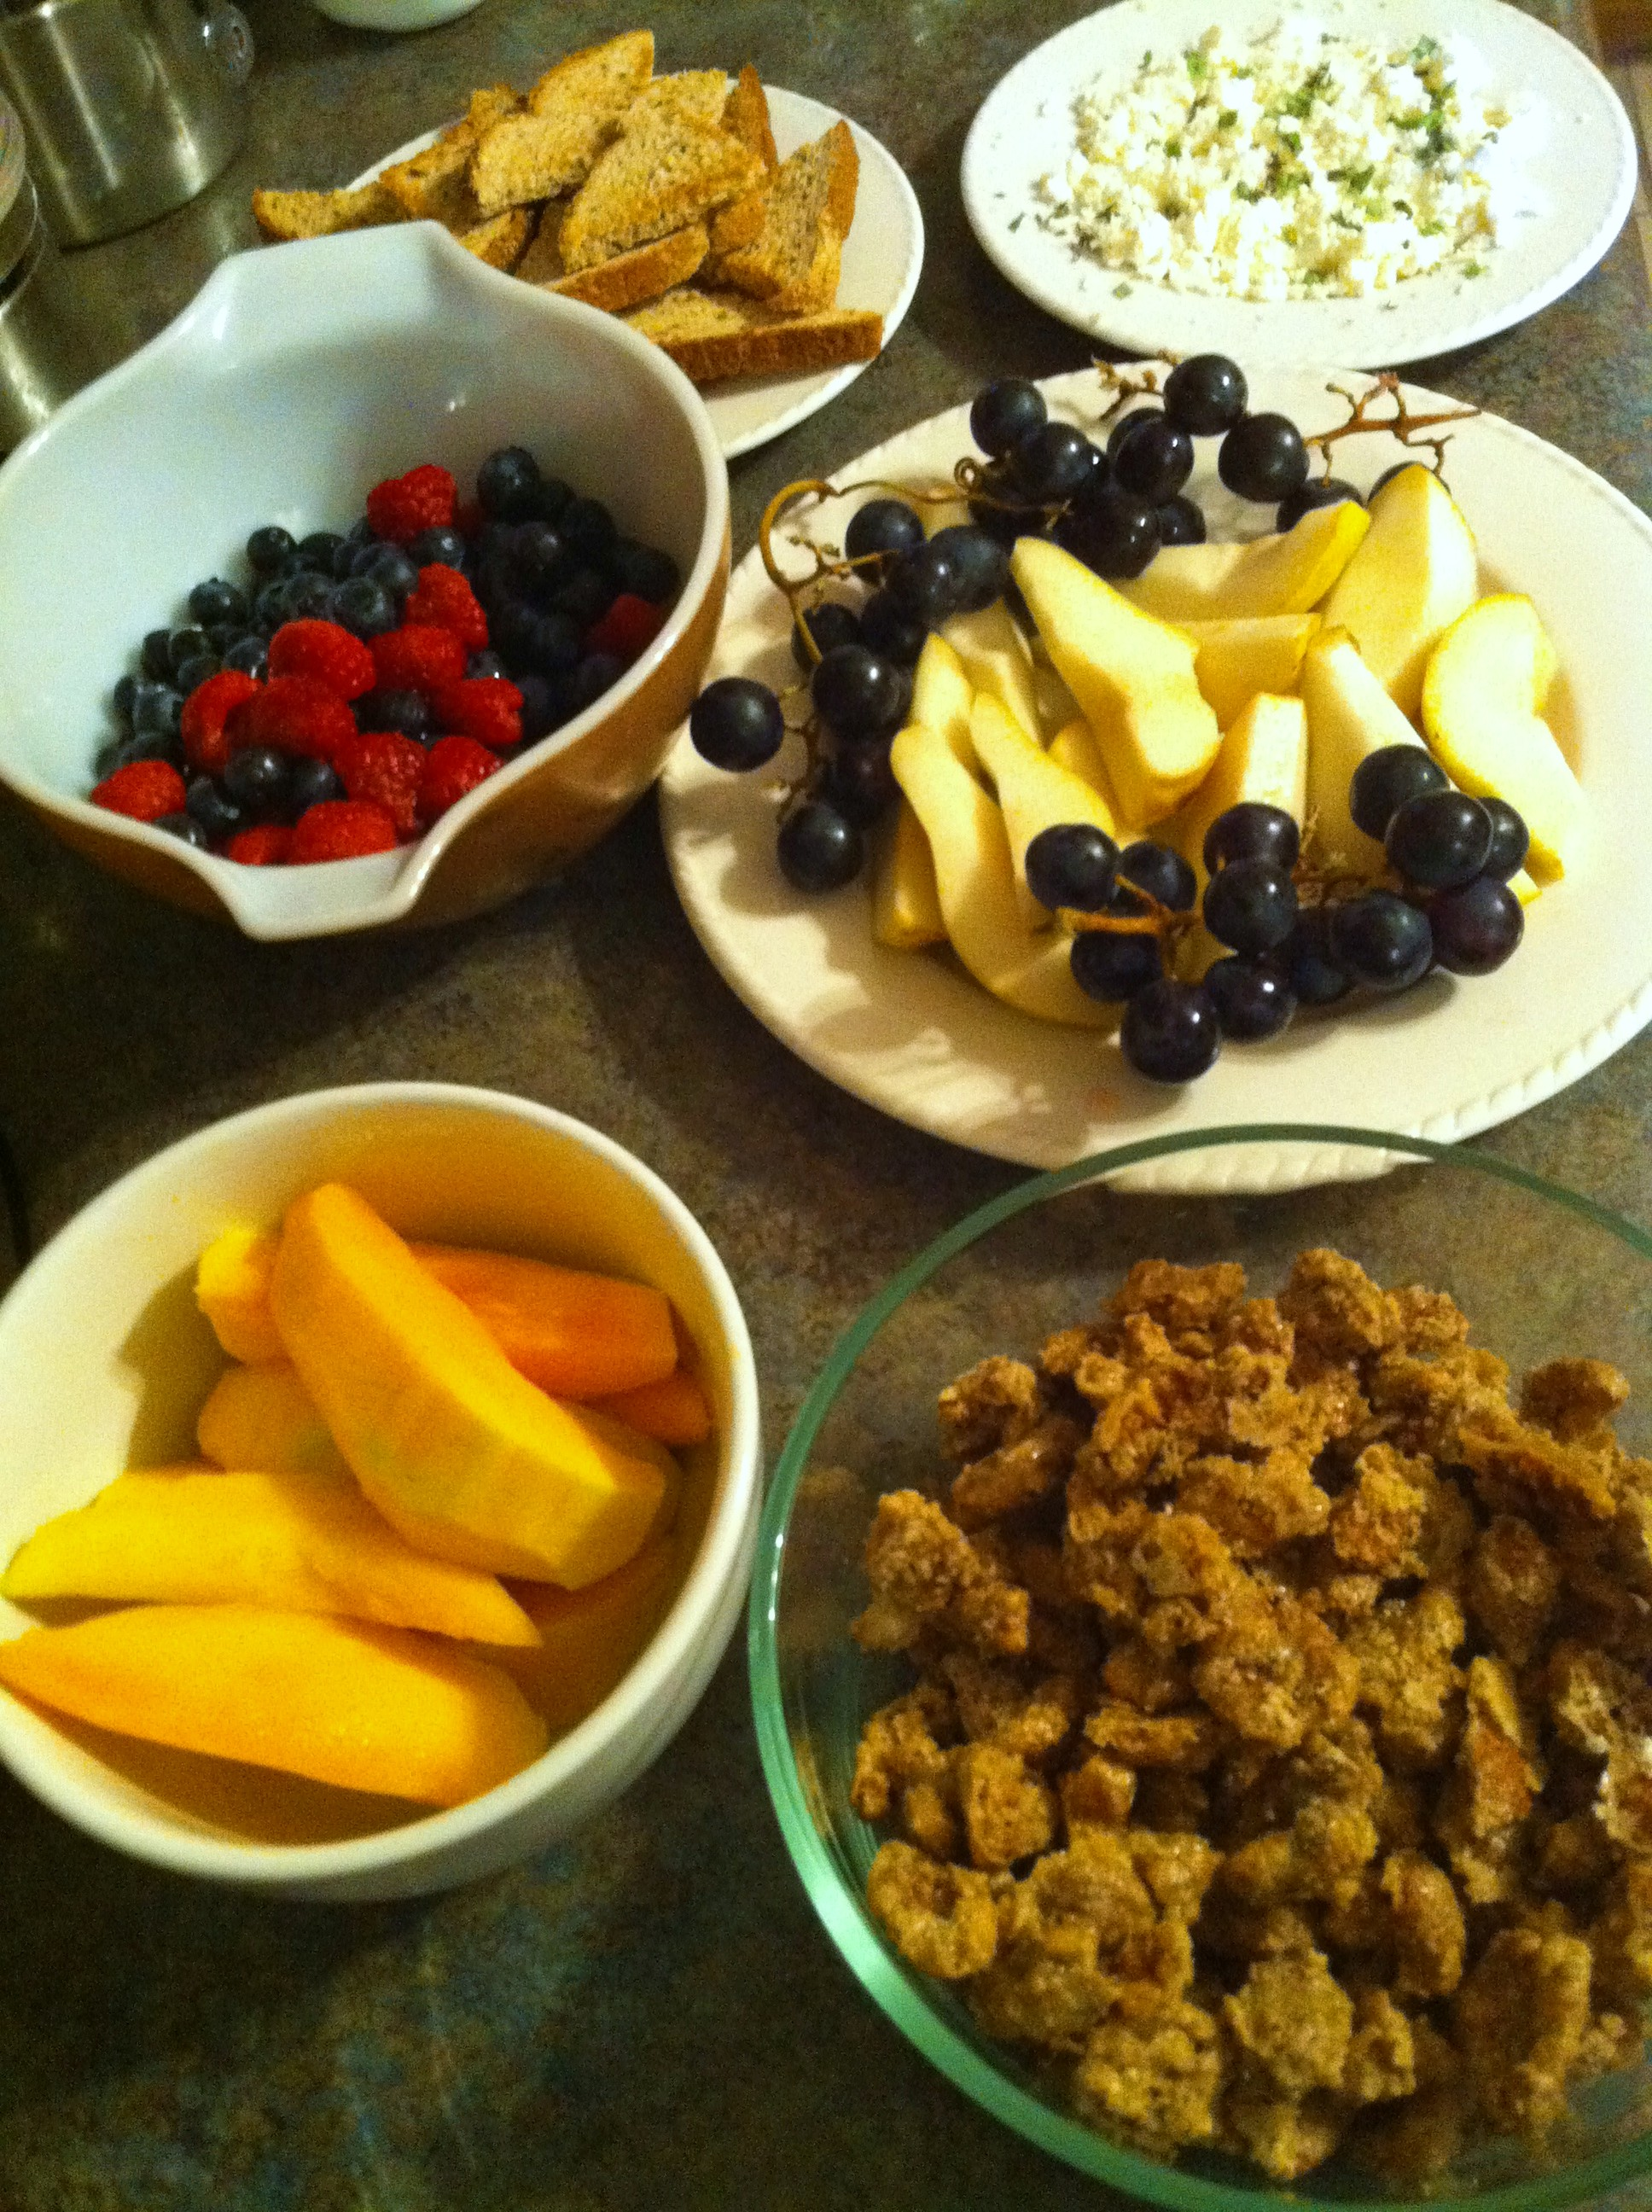 Fruit, Nut and Cheese plate.